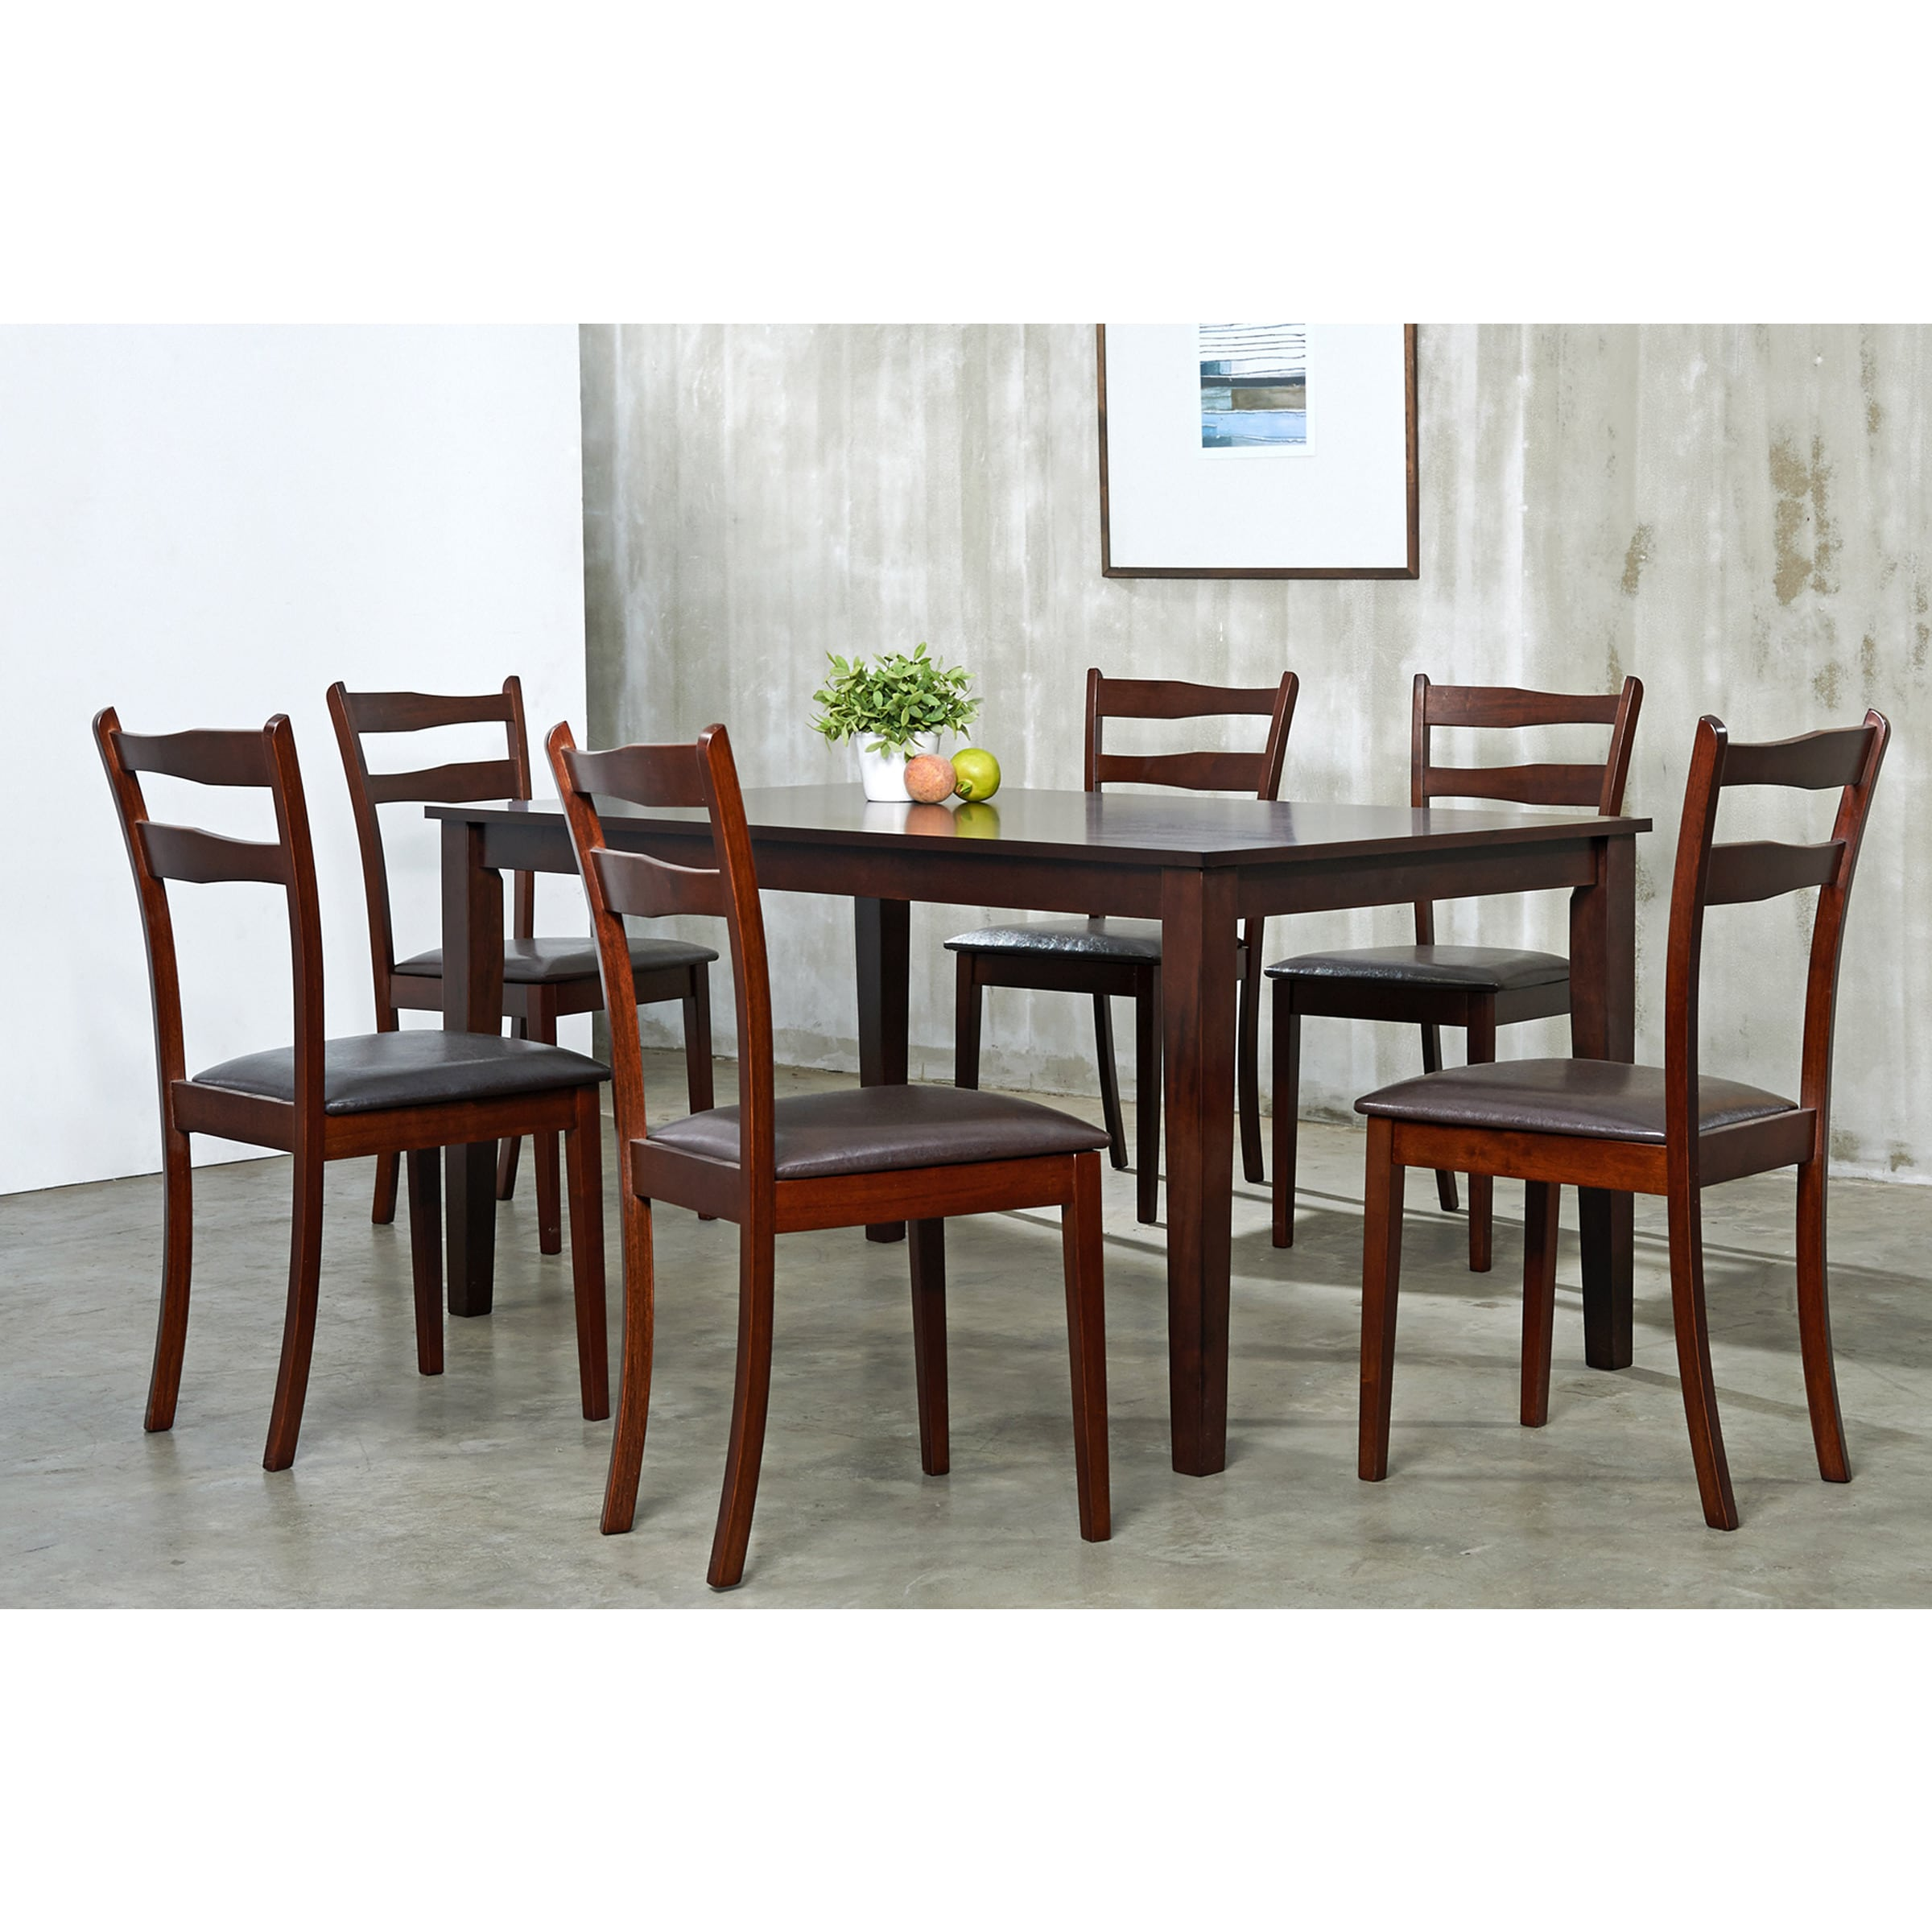 Discount Dining Room Sets Free Shipping: Callan 7-piece Dining Room Furniture Set